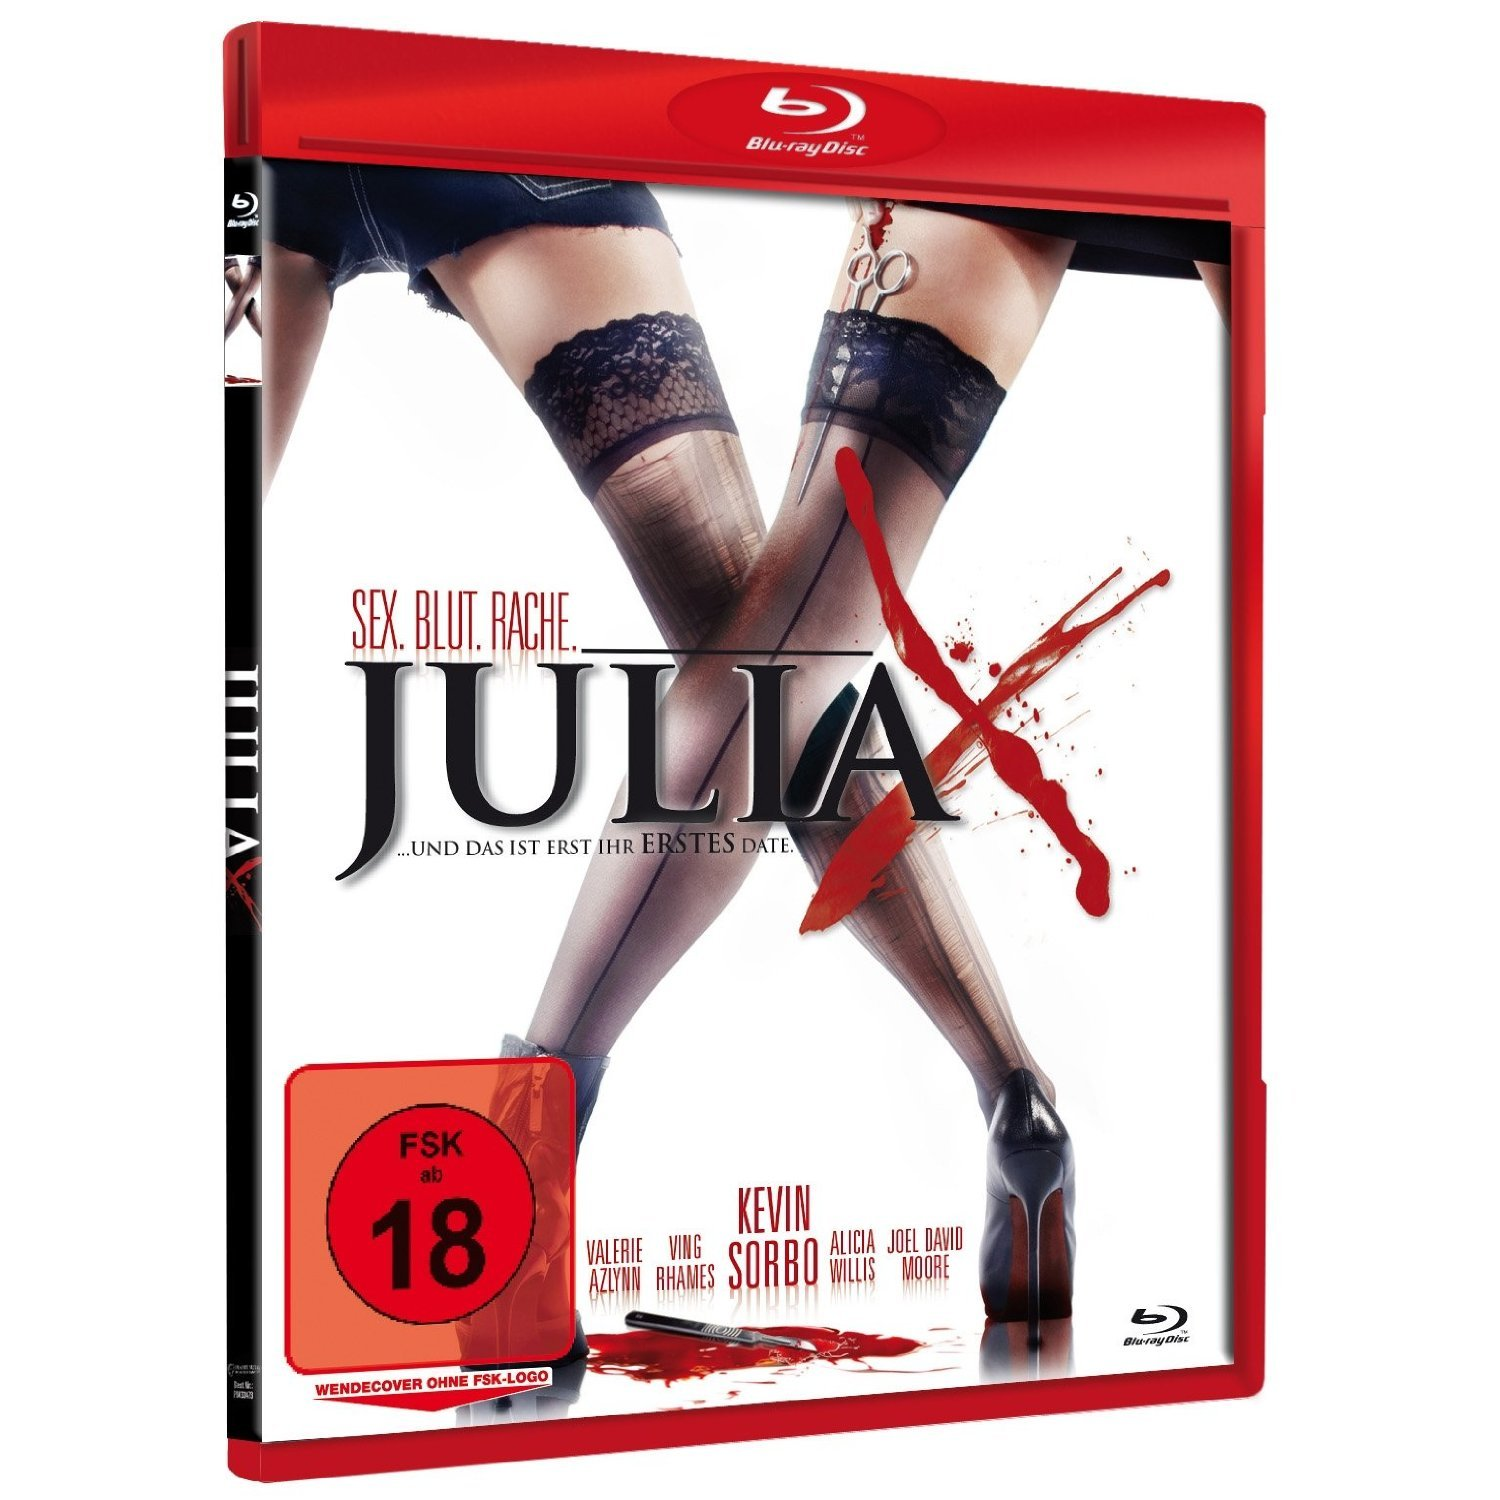 Julia X 3D 2011 720p BluRay x264 DTS-HDChina